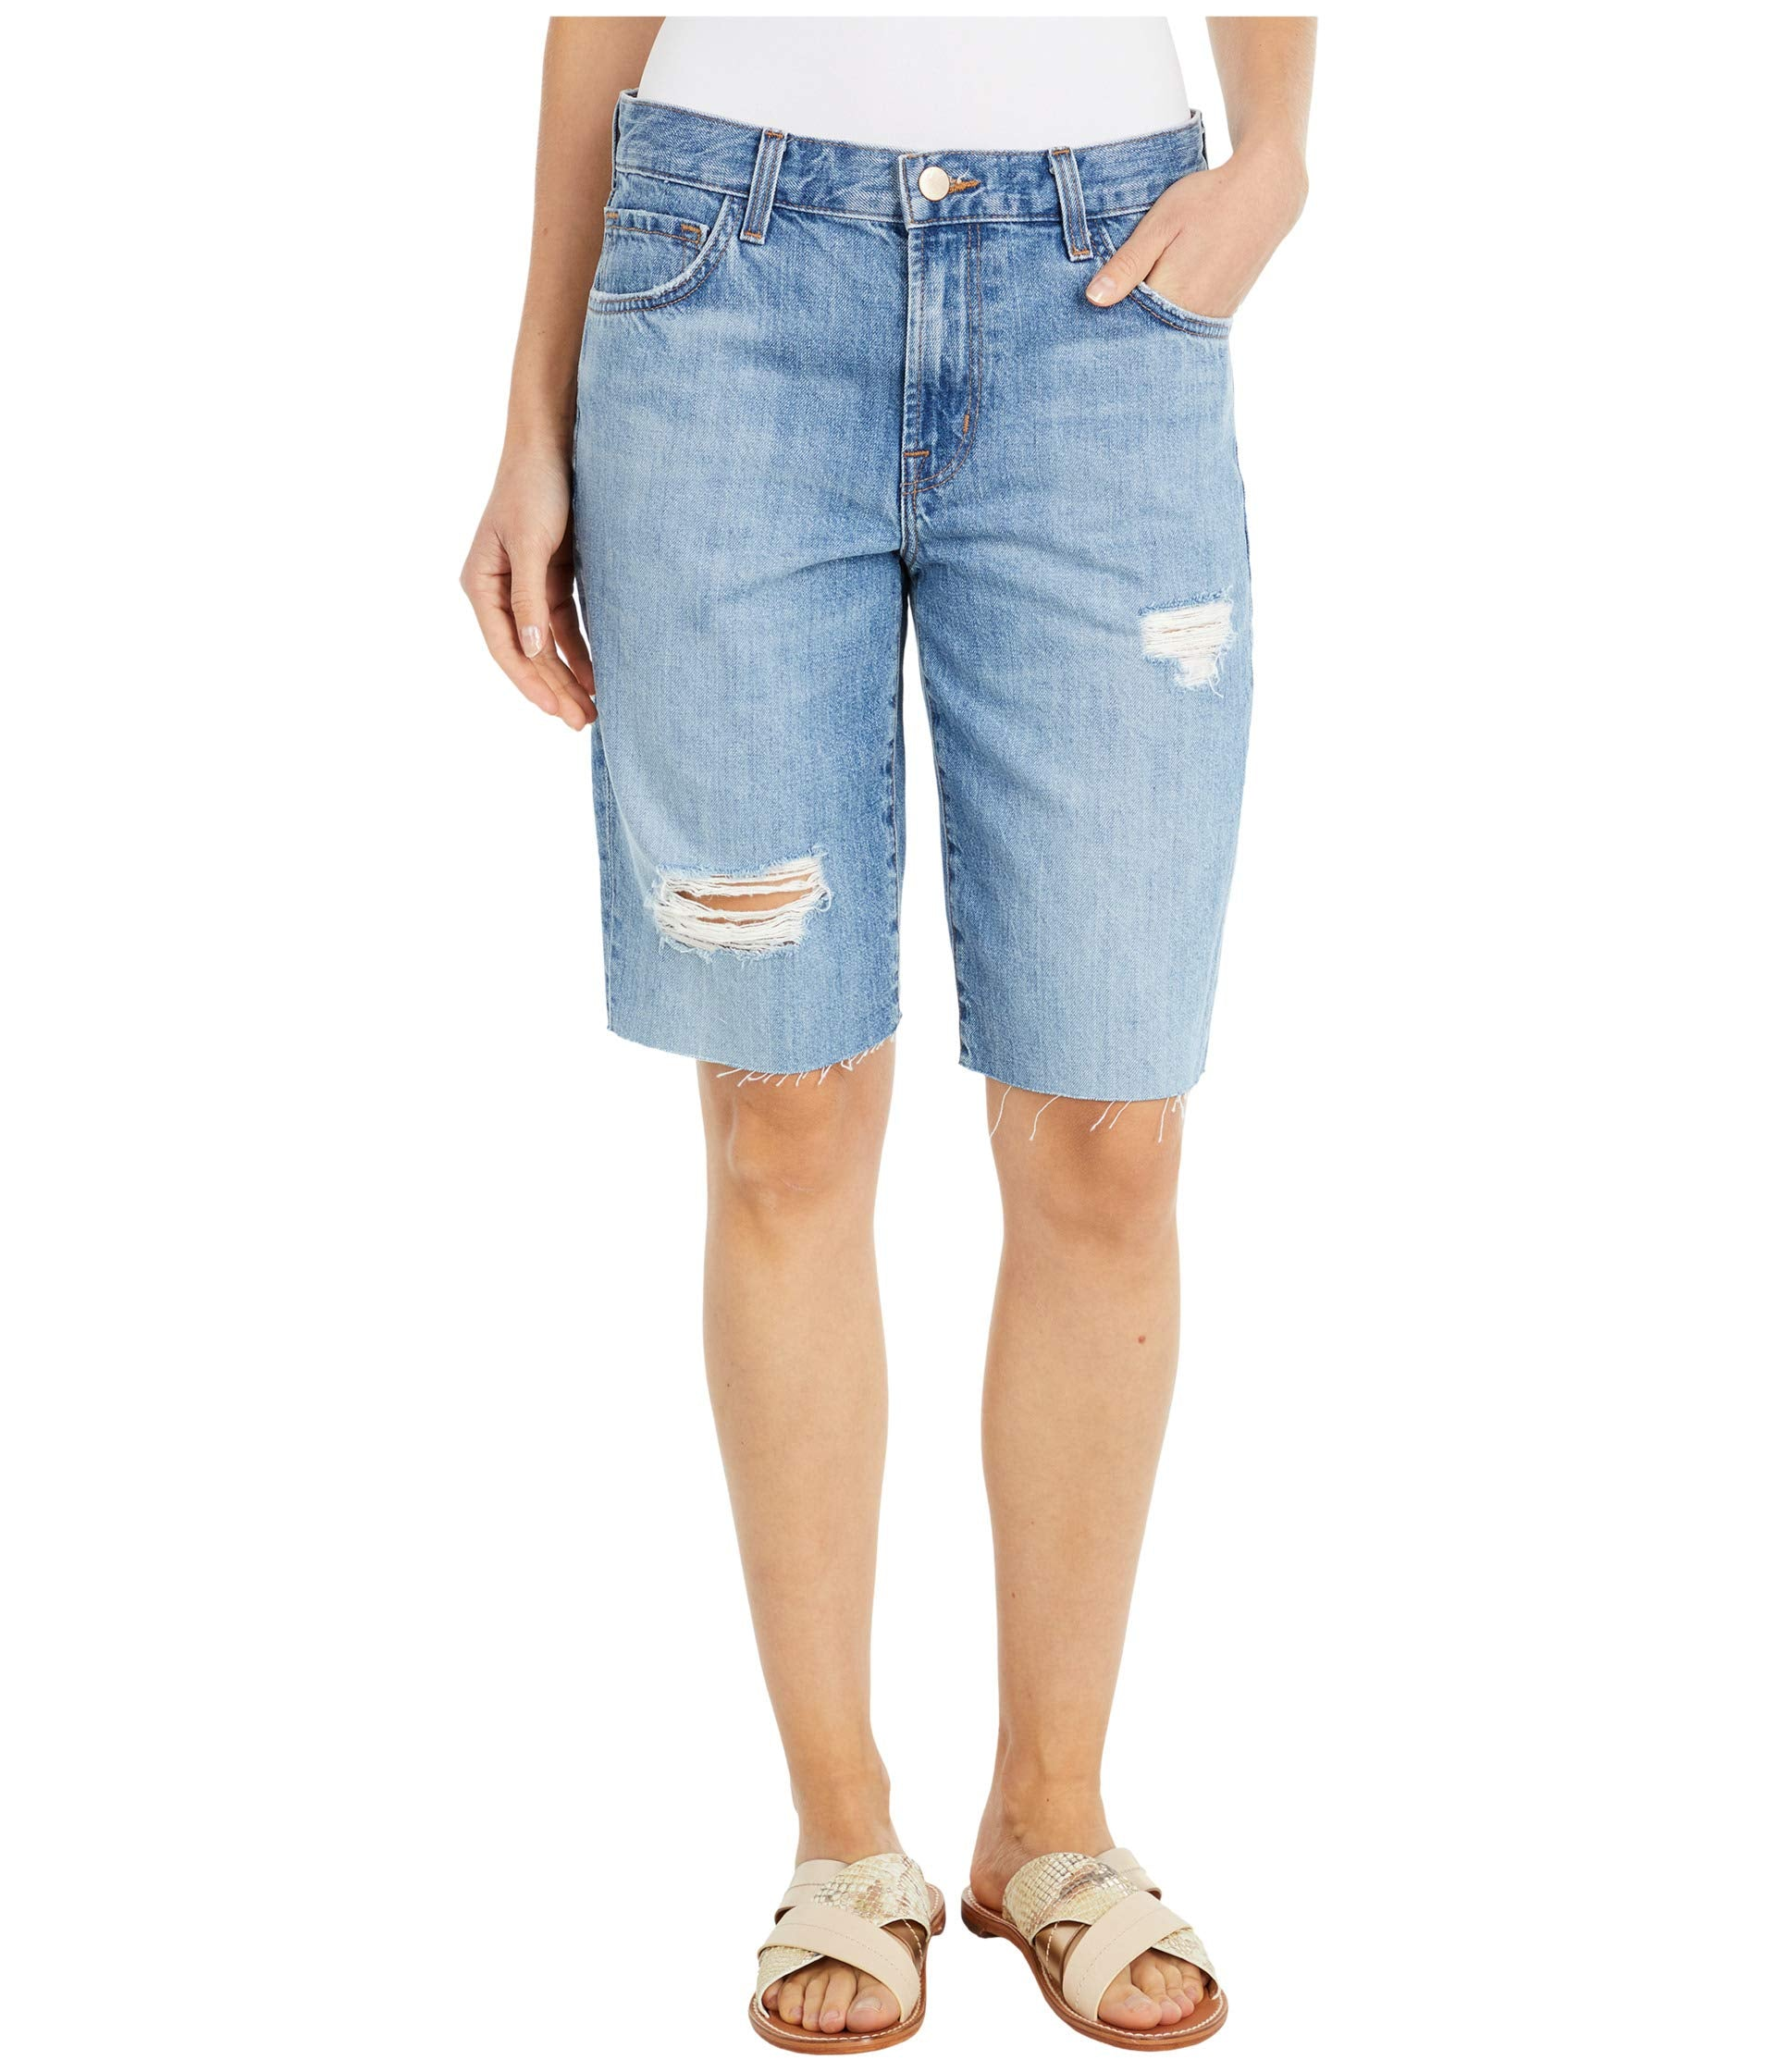 Relaxed Bermuda Shorts in Senska Destruct